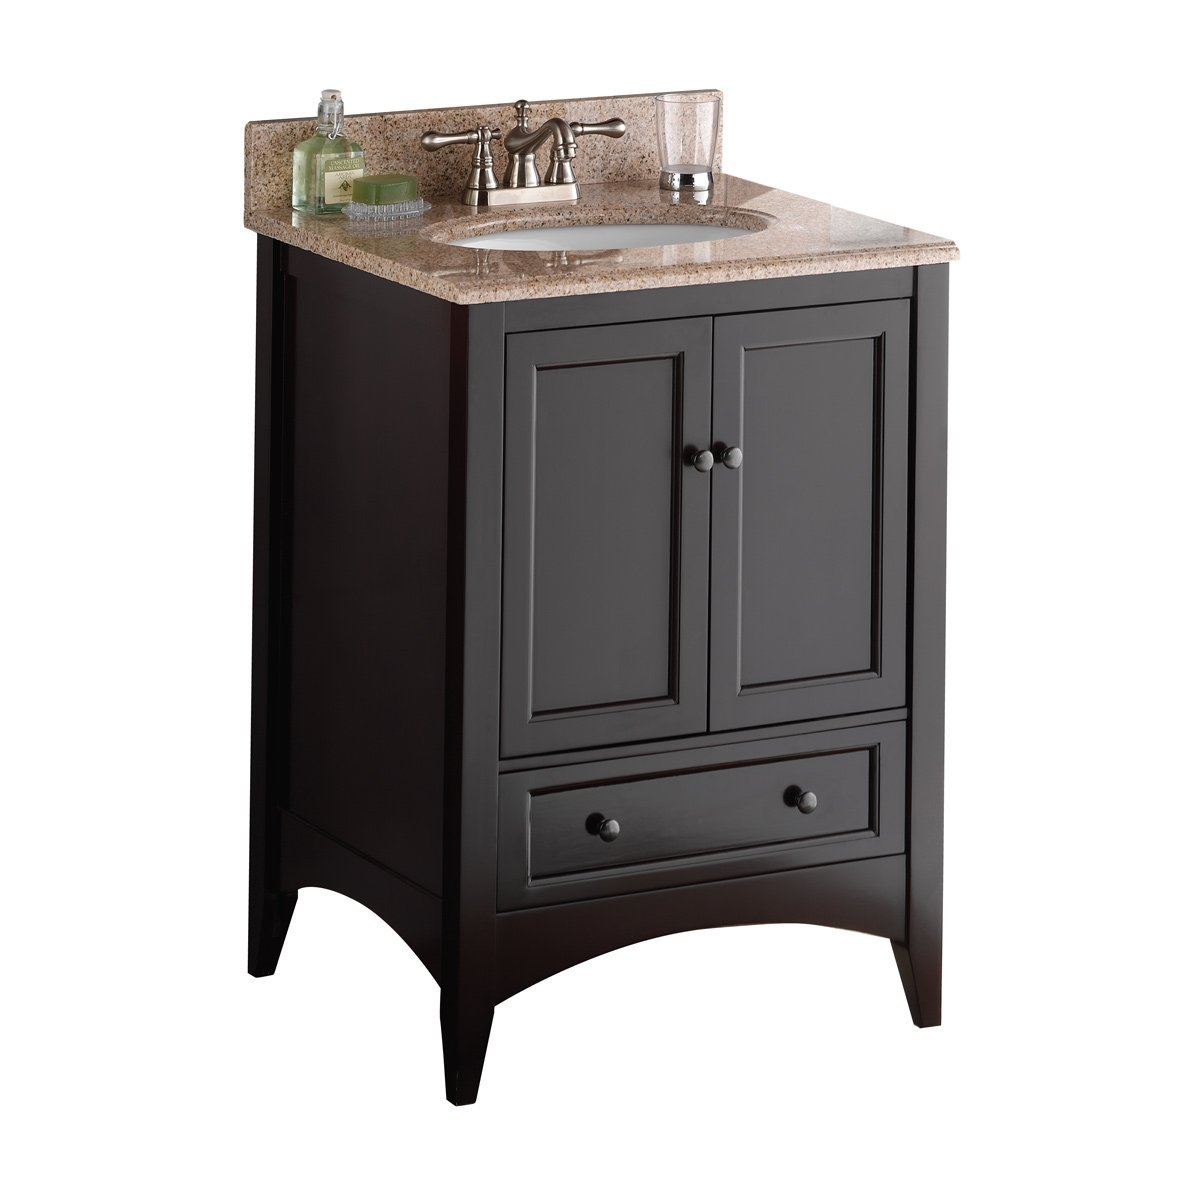 24 Inch Bathroom Vanity Base